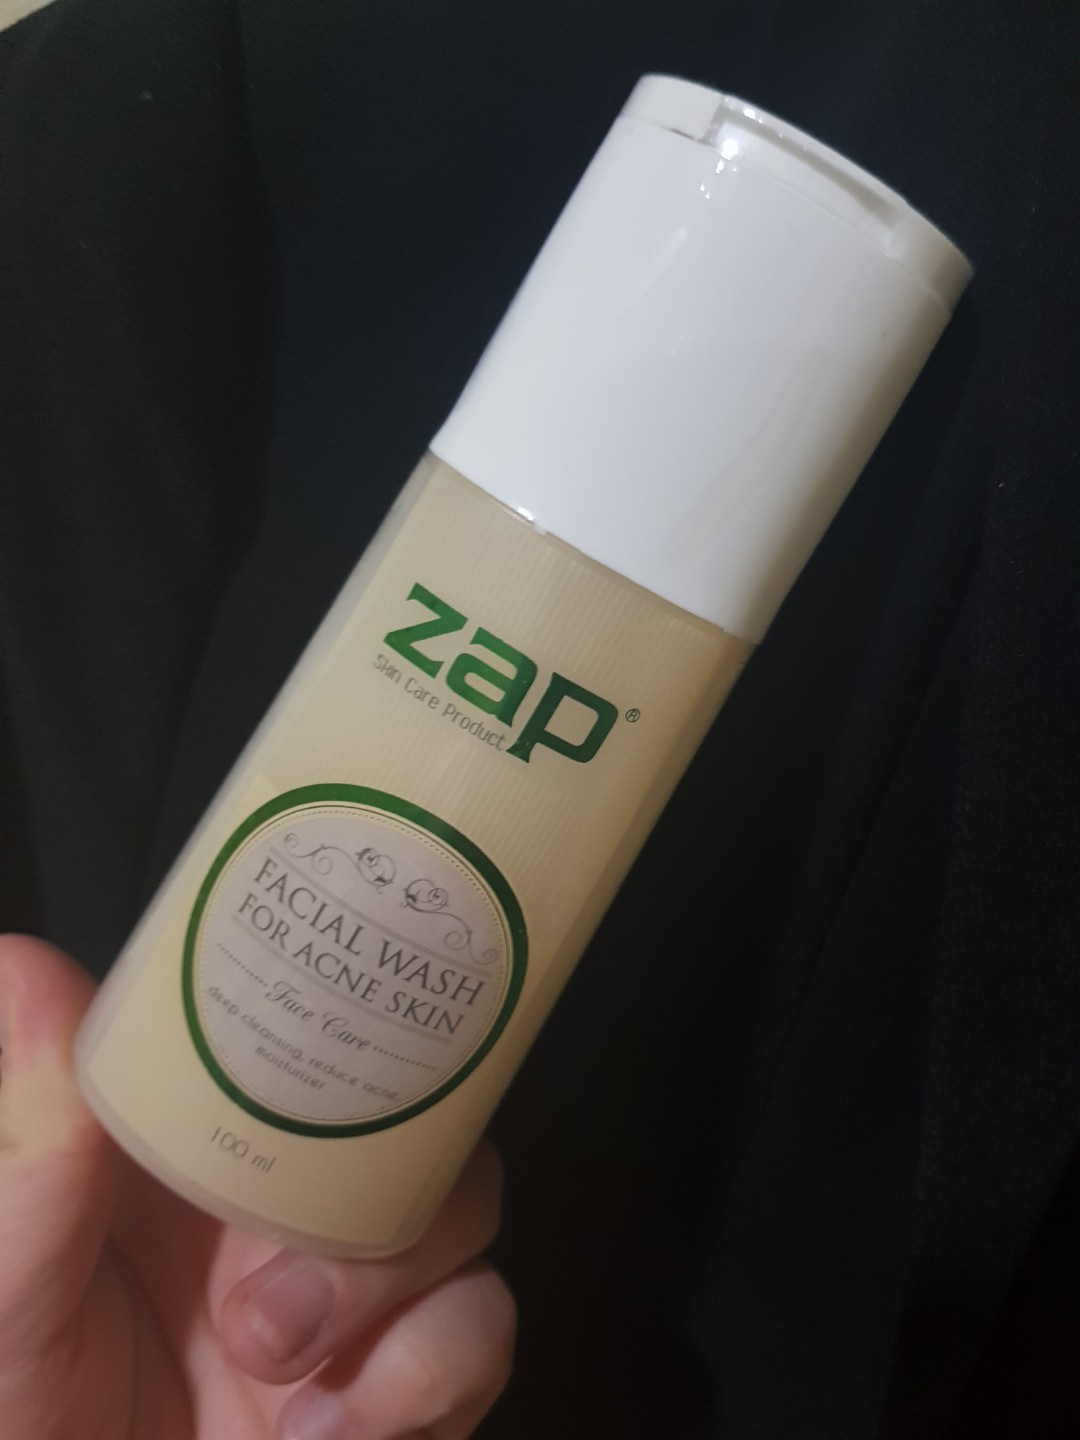 ZAP Facial Wash for Acne Skin